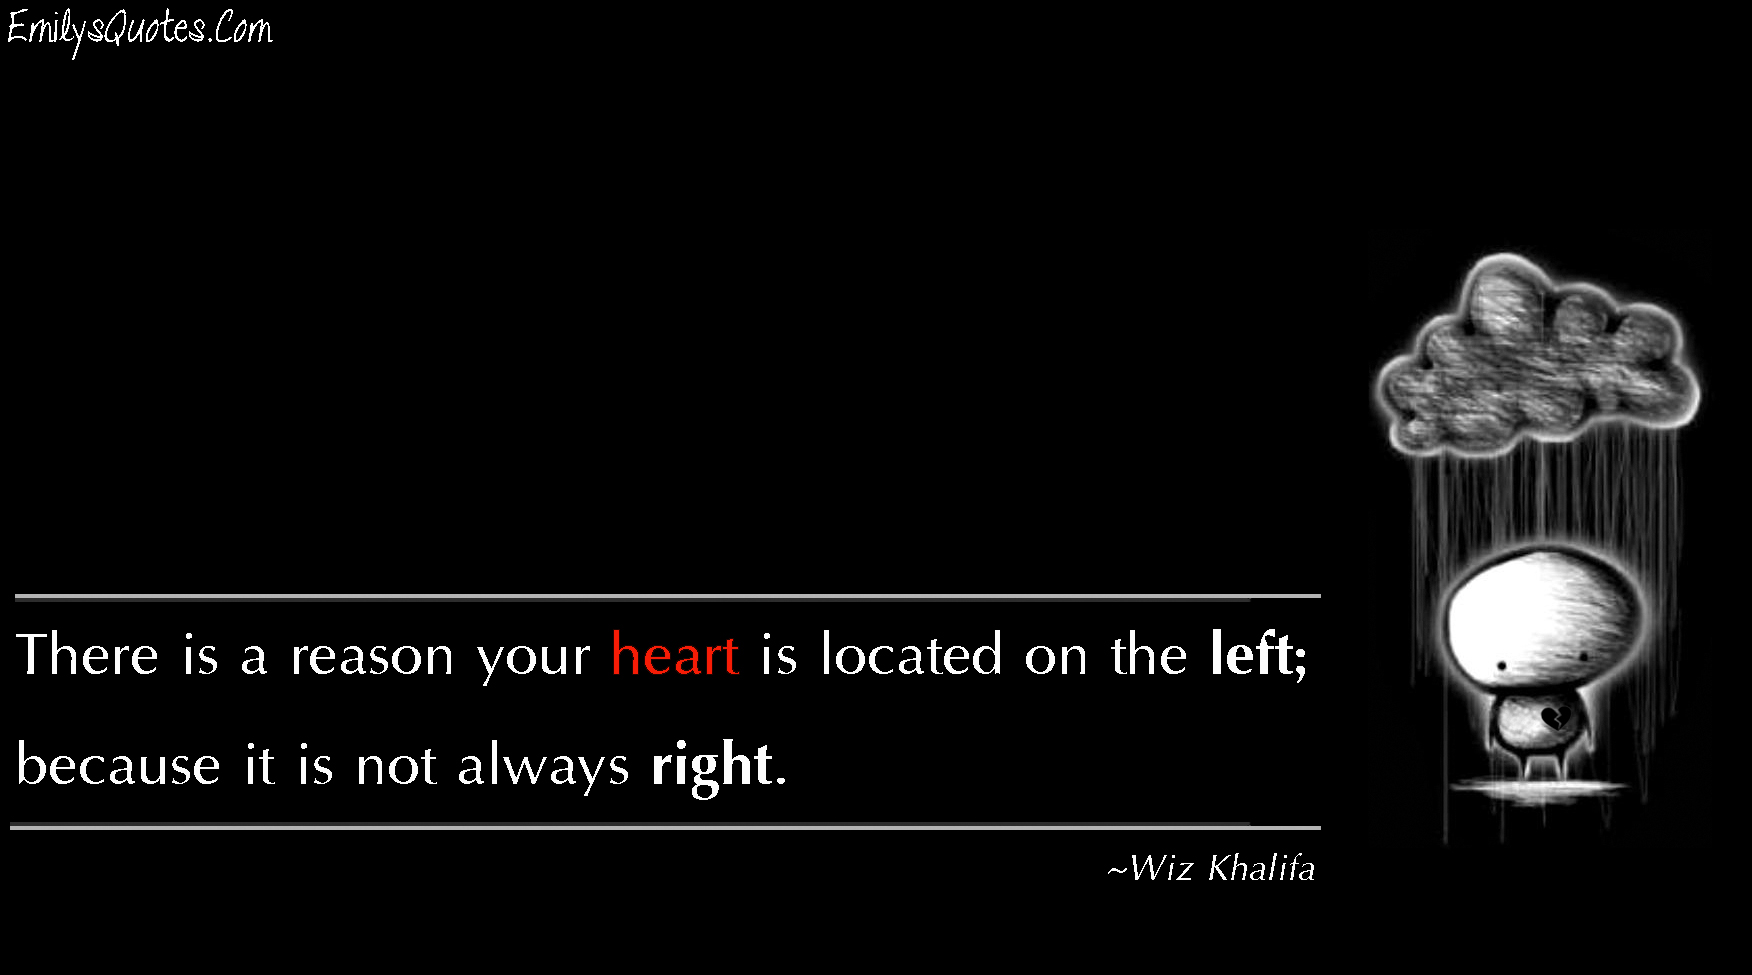 There is a reason your heart is located on the left ...